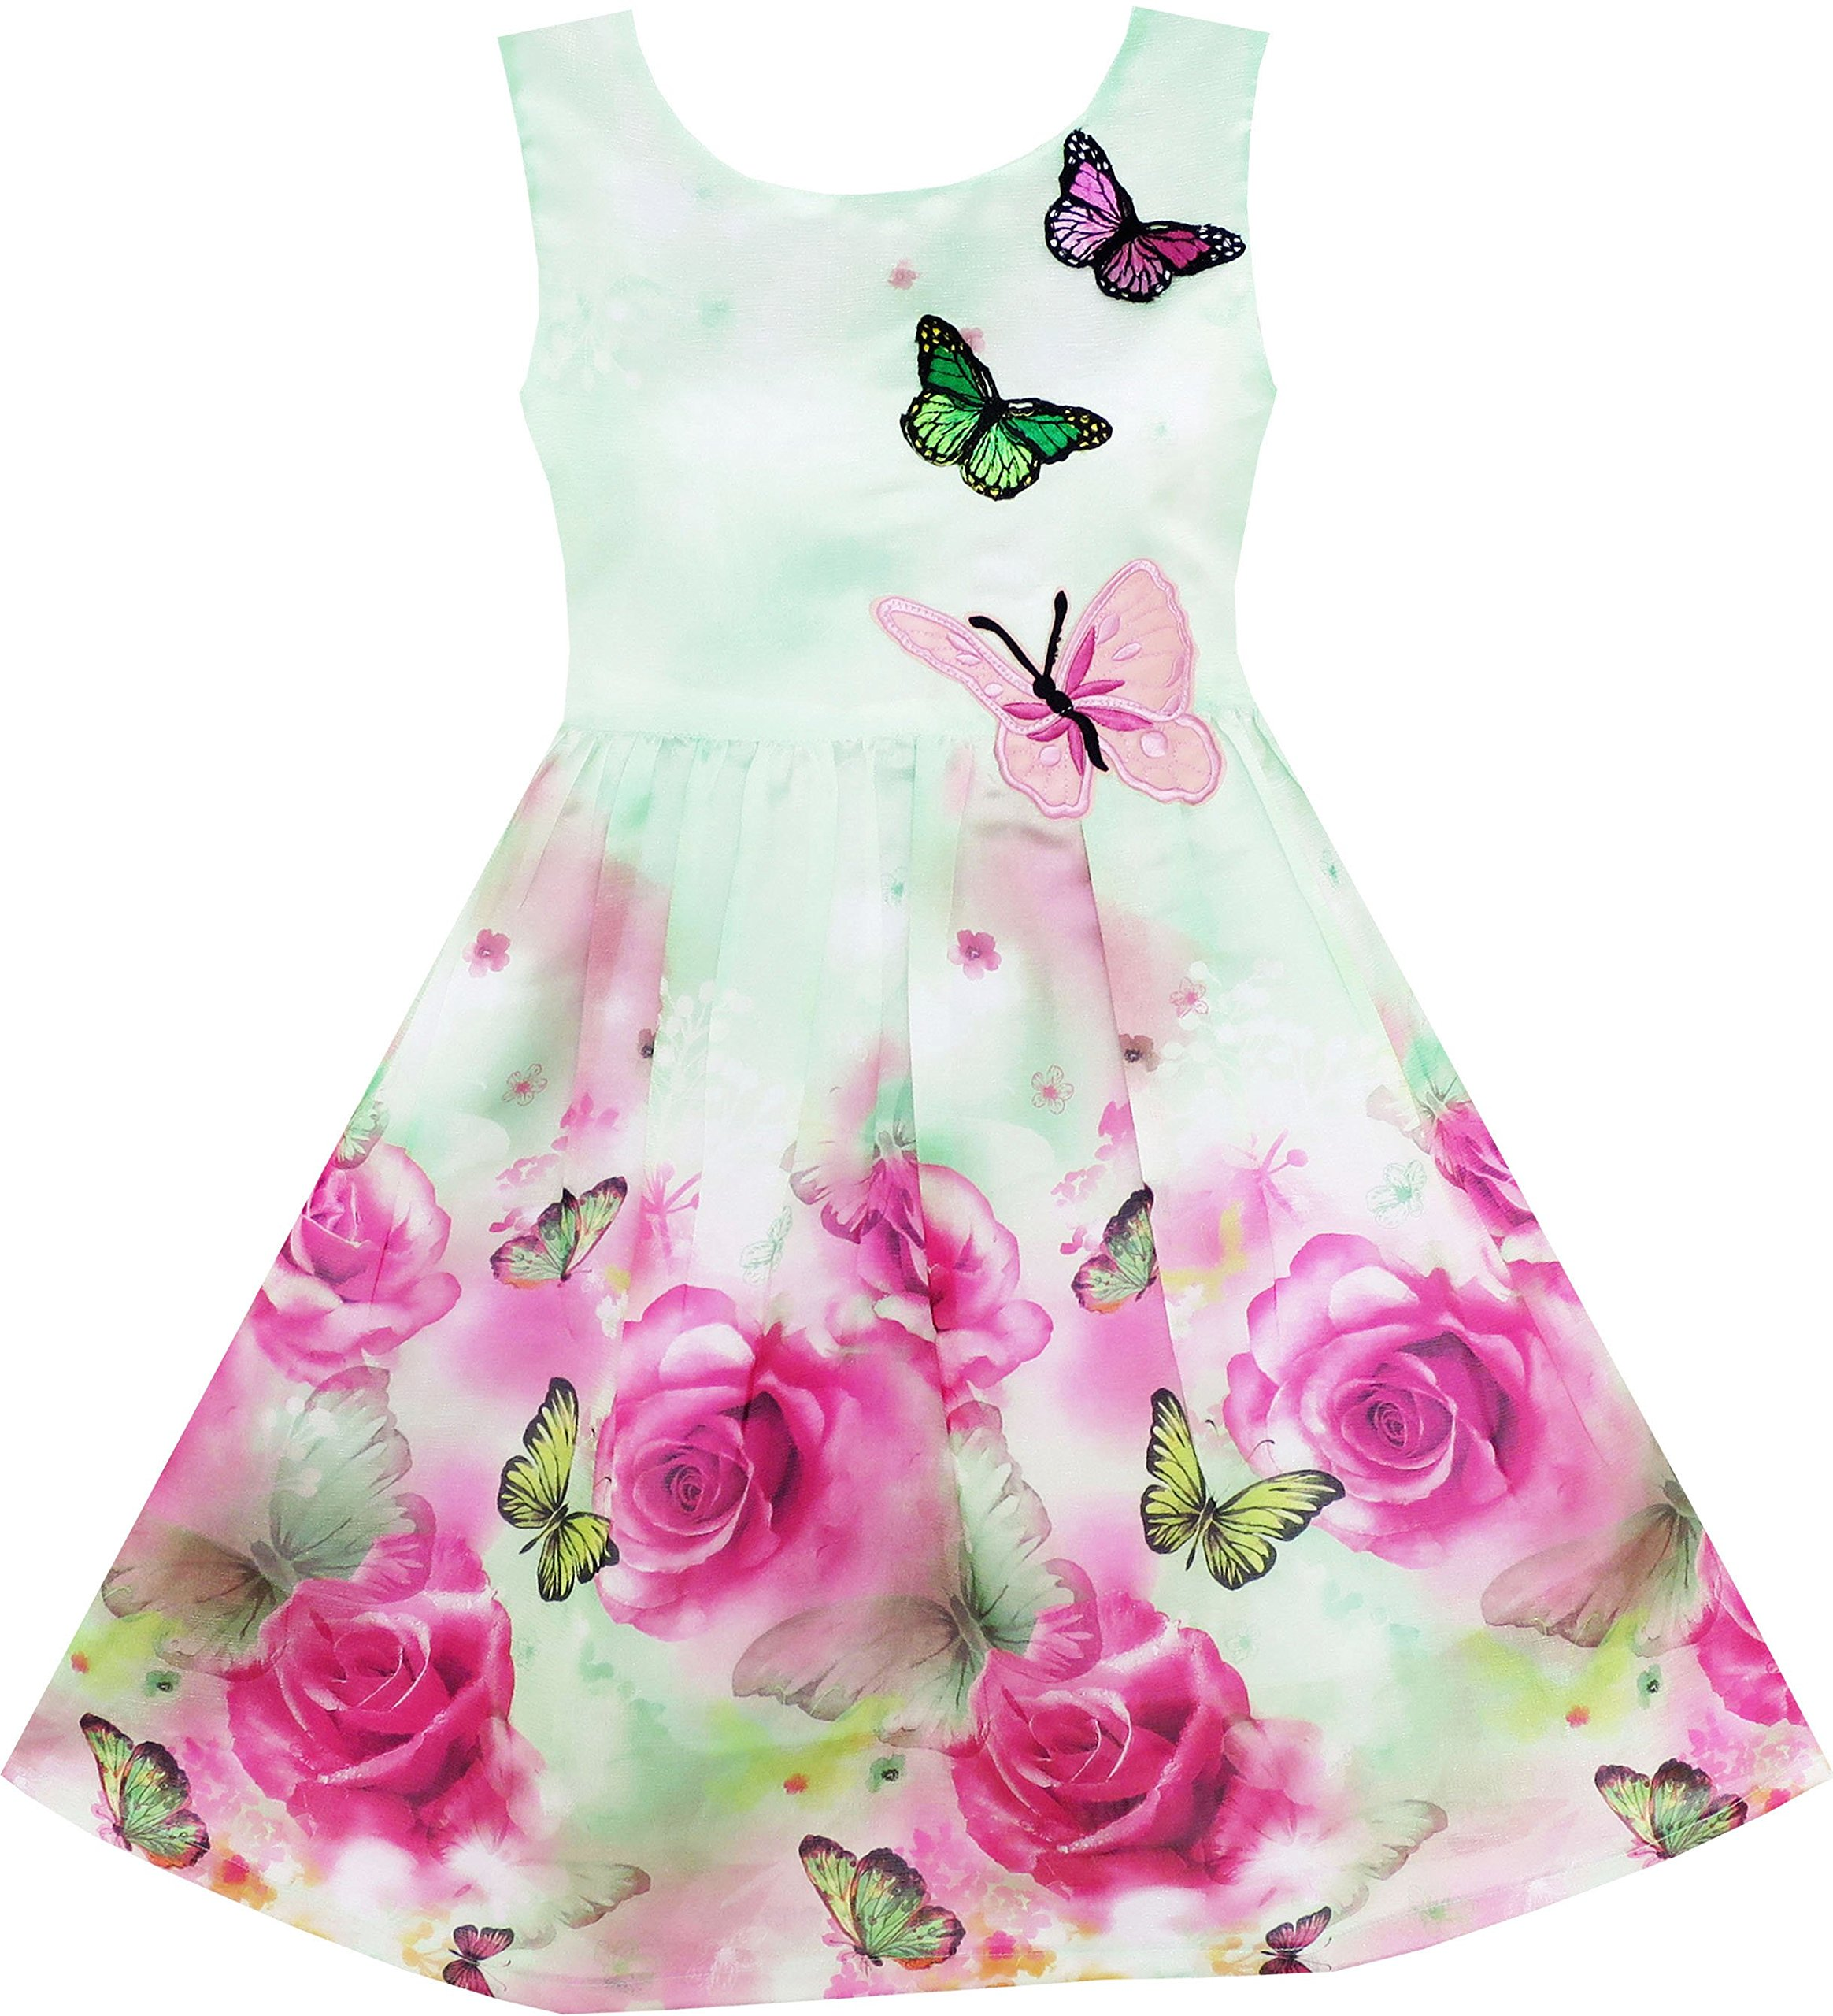 Sunny Fashion Girls Dress Turquoise Butterfly Embroidered Halter Dress Party